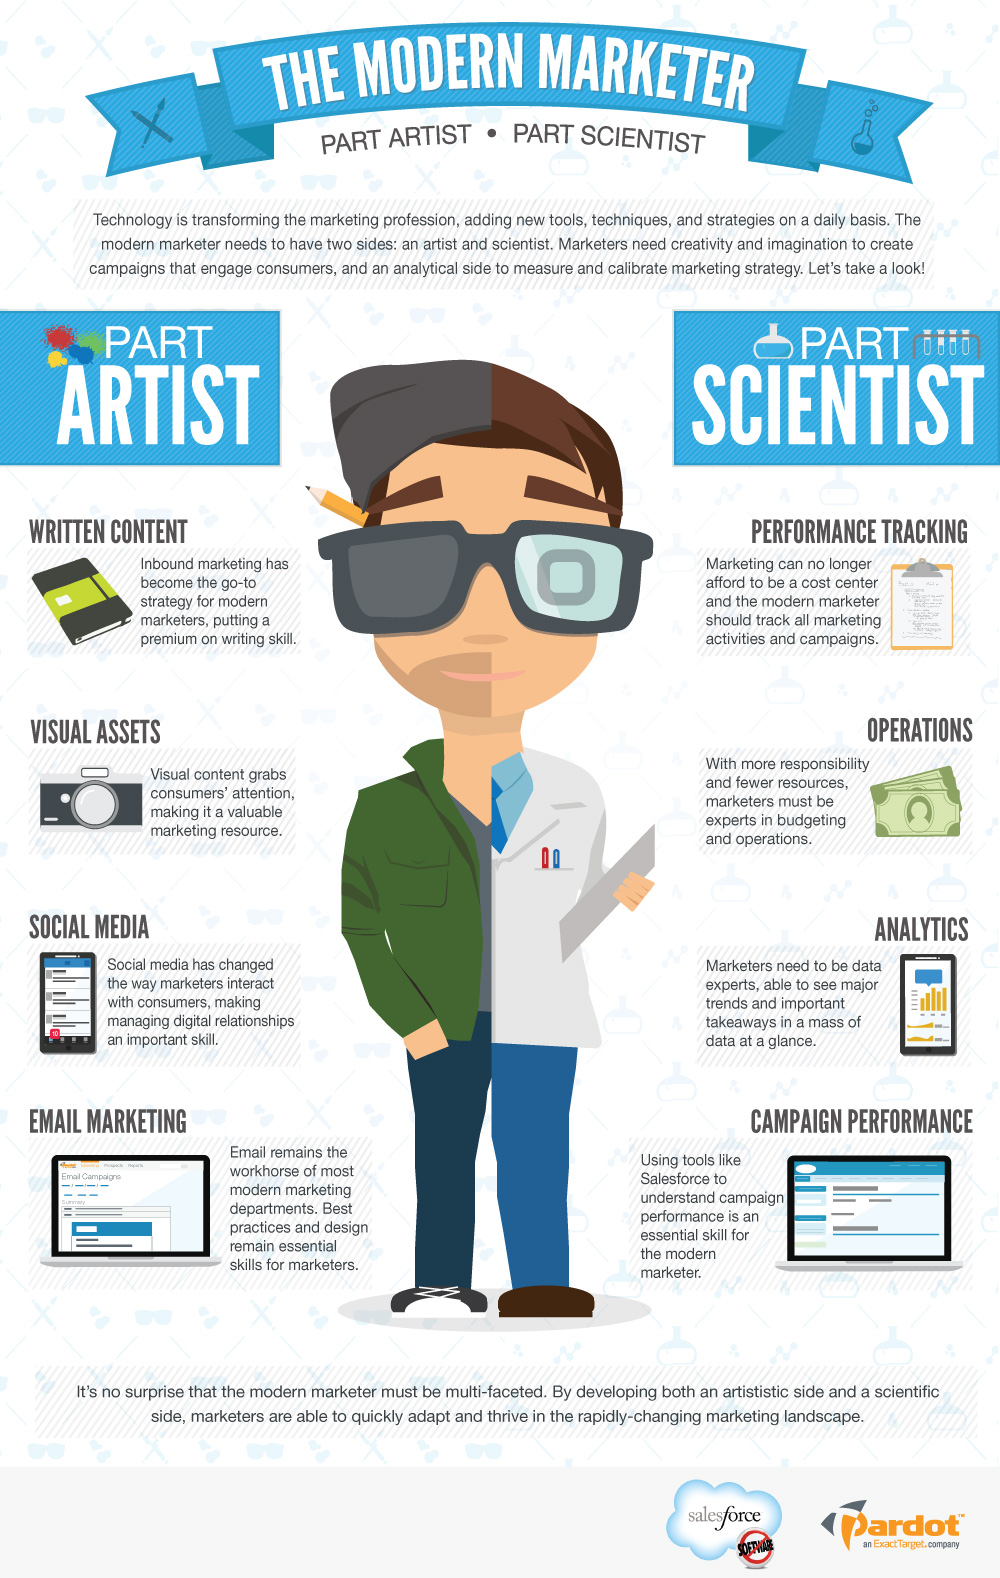 the modern marketer jonno rodd The Modern Marketer: Part Artist, Part Scientist [INFOGRAPHIC]